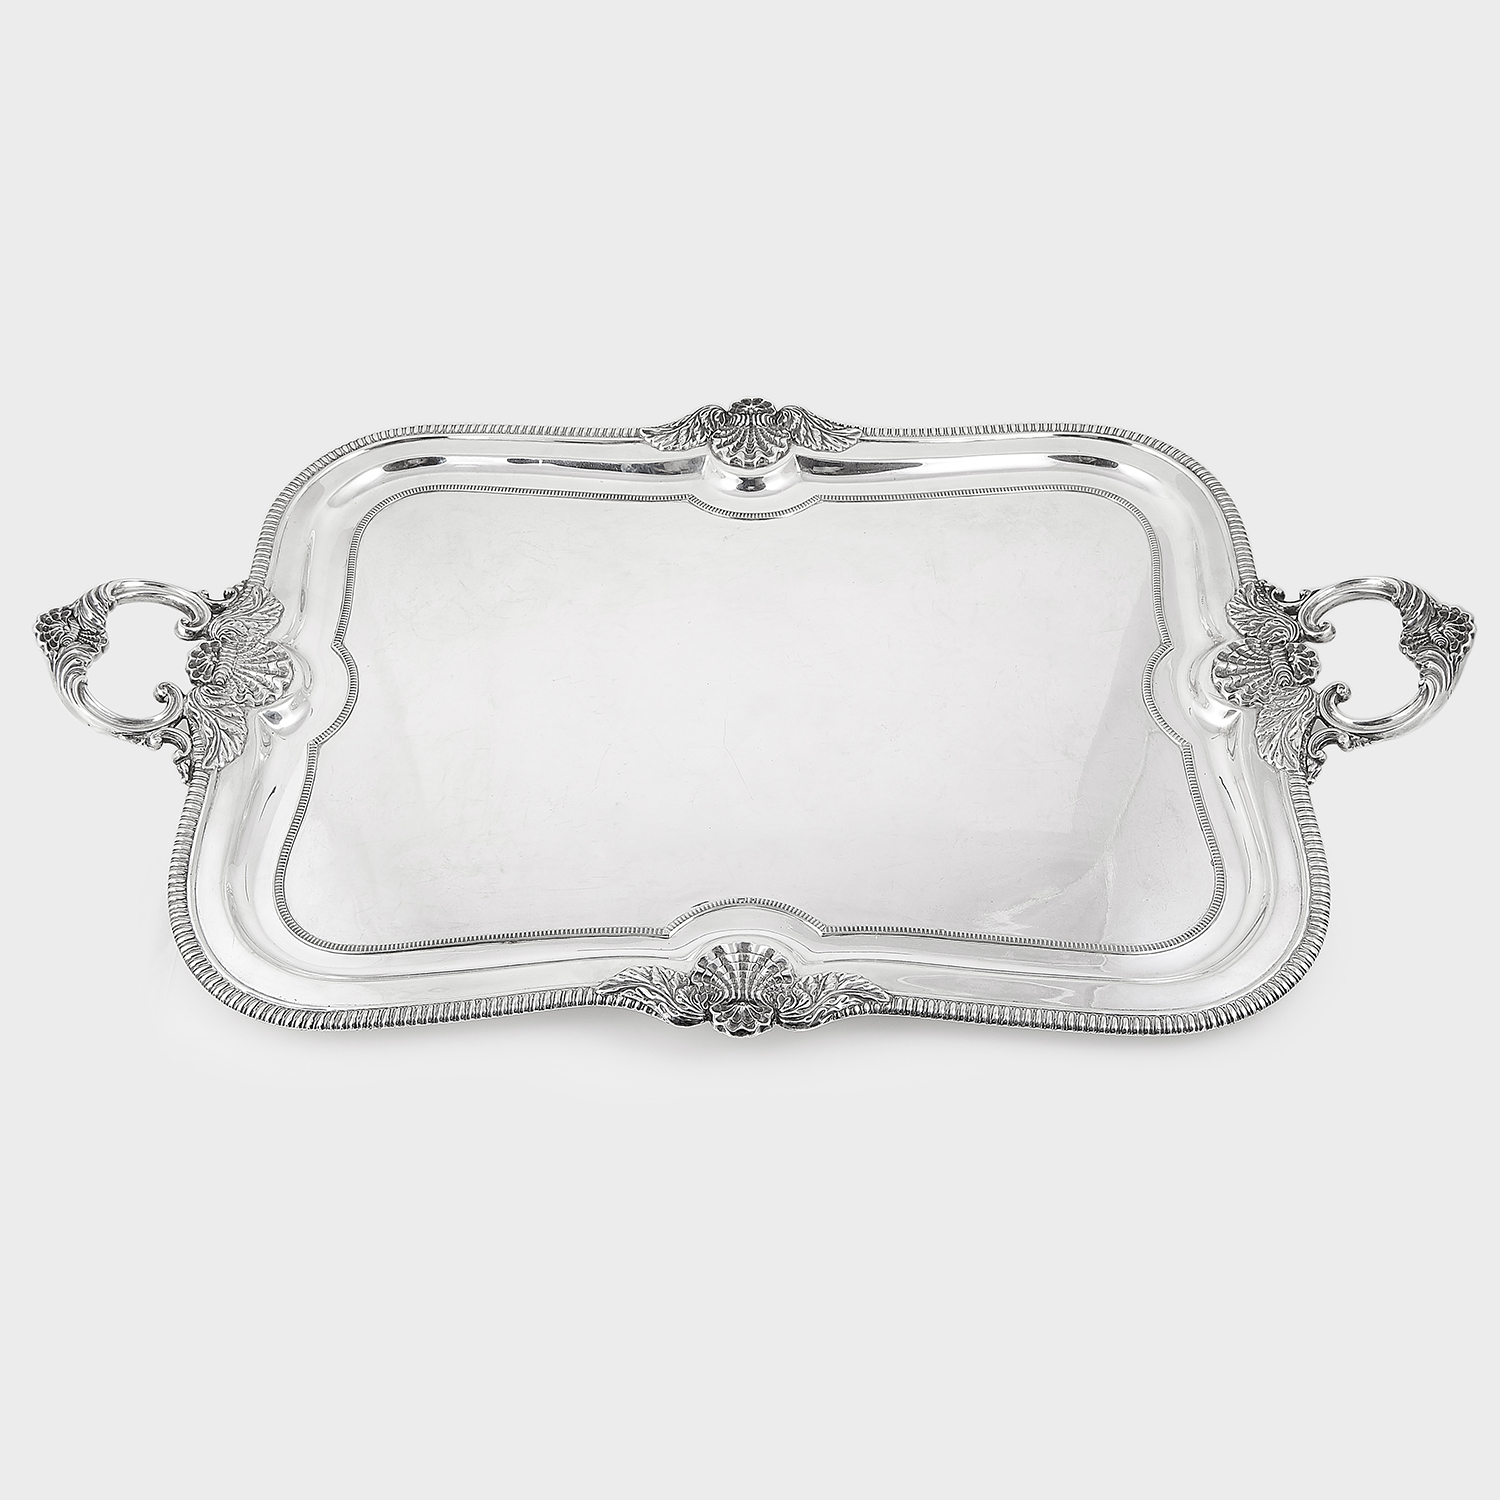 Los 1 - ANTIQUE GEORGE V STERLING SILVER TEA TRAY, MAPPIN & WEBB, SHEFFIELD 1924 rounded rectangular form